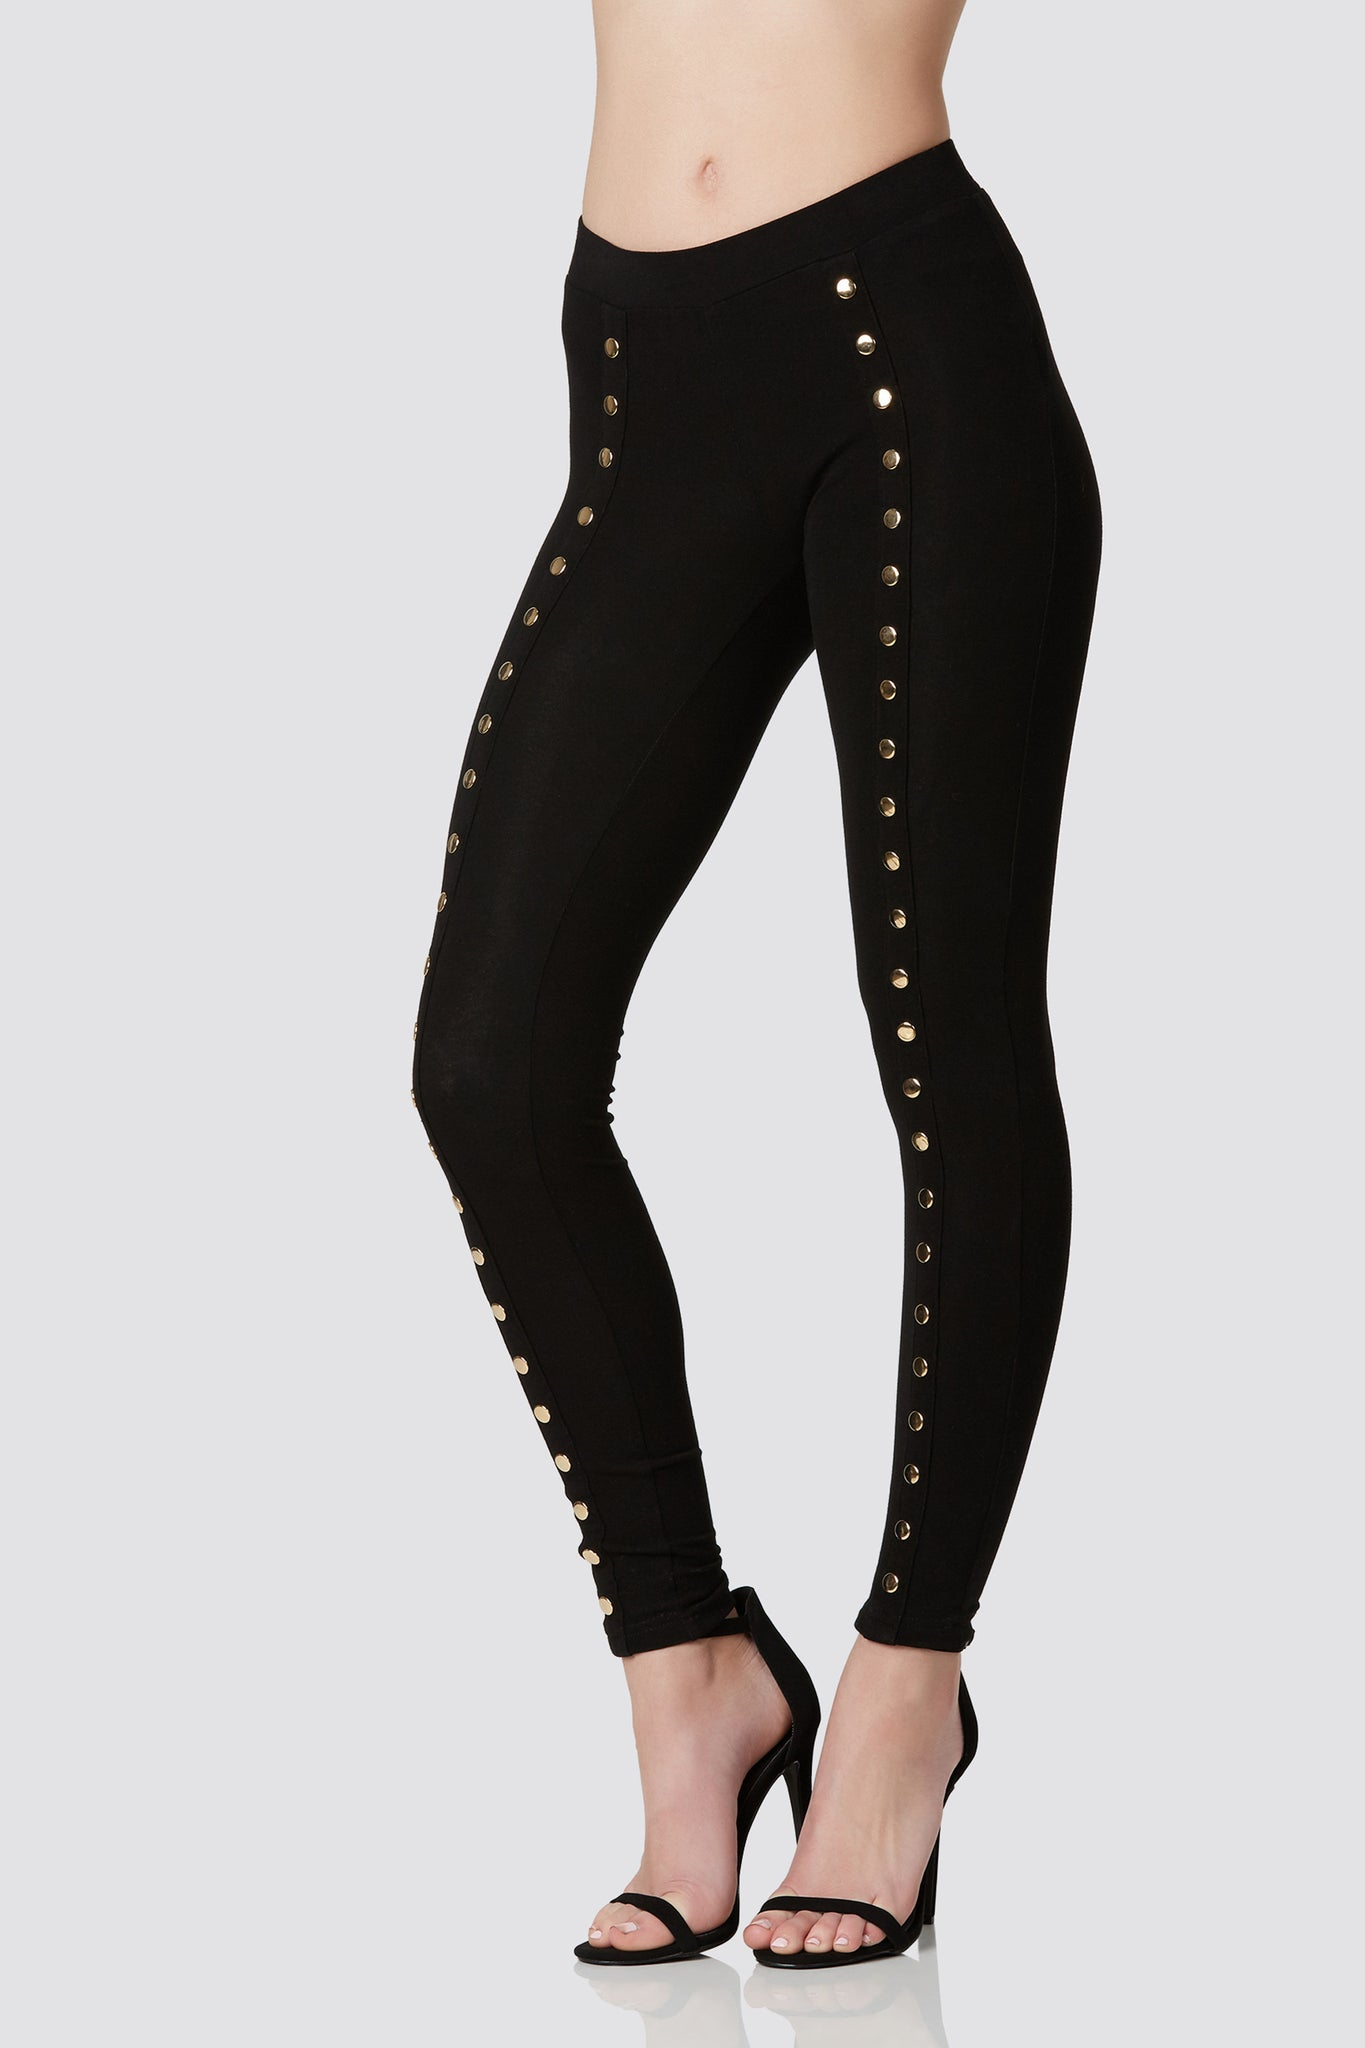 Slim fit basic leggings with trendy faux snap button detailing down each leg. Stretchy material with straight hem finish.